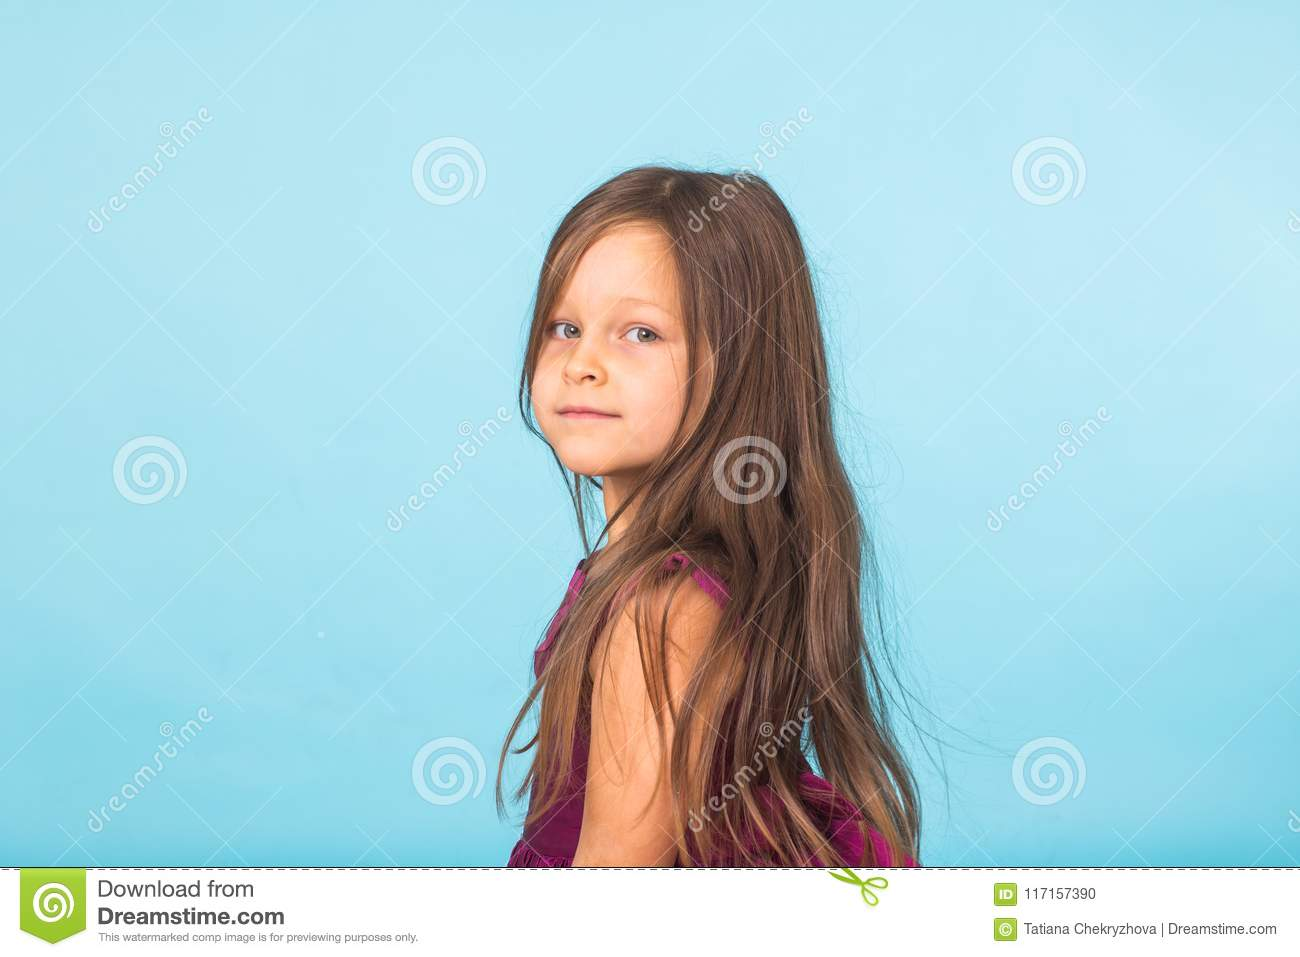 Cute cheerful little girl portrait, isolated on blue background